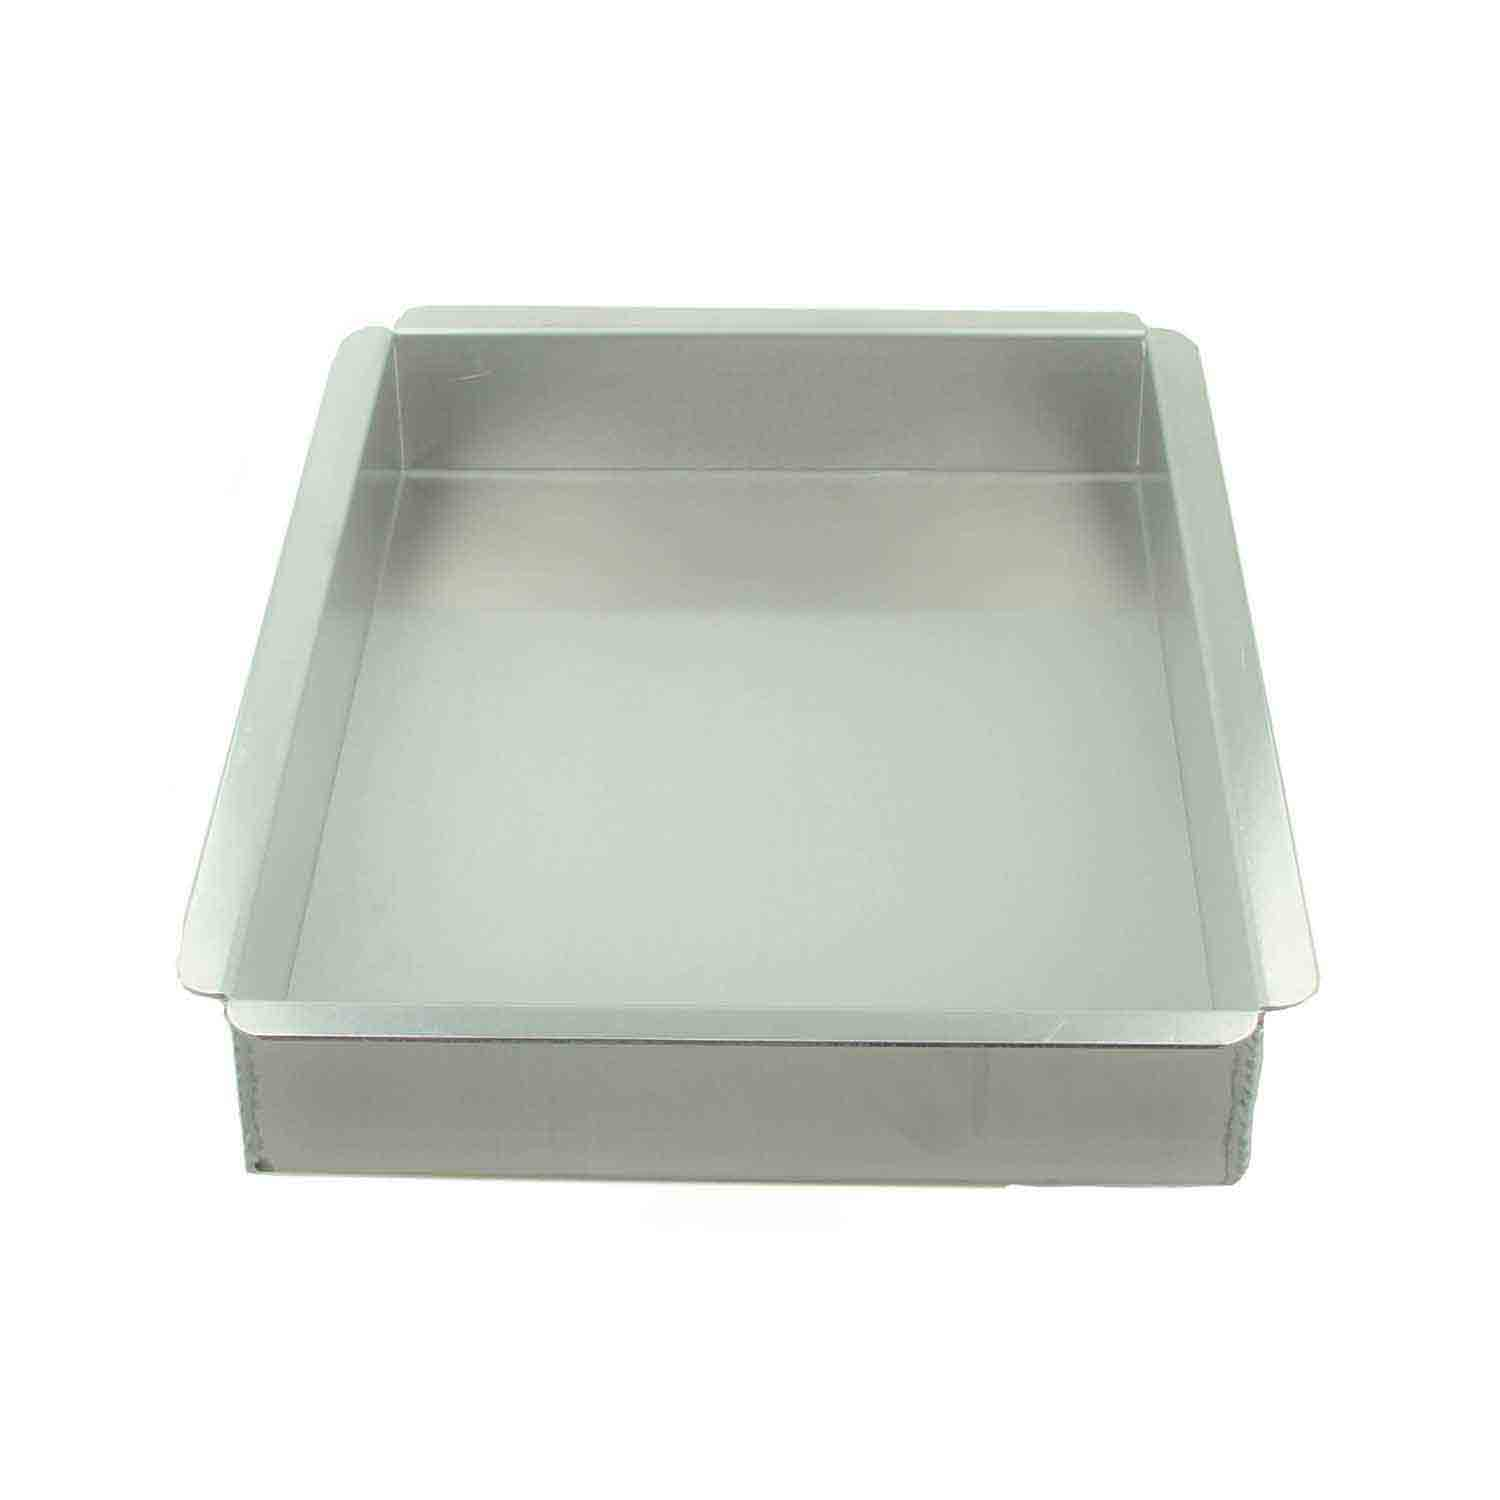 "9 x 13 x 2"" Quarter Sheet Cake Pan"